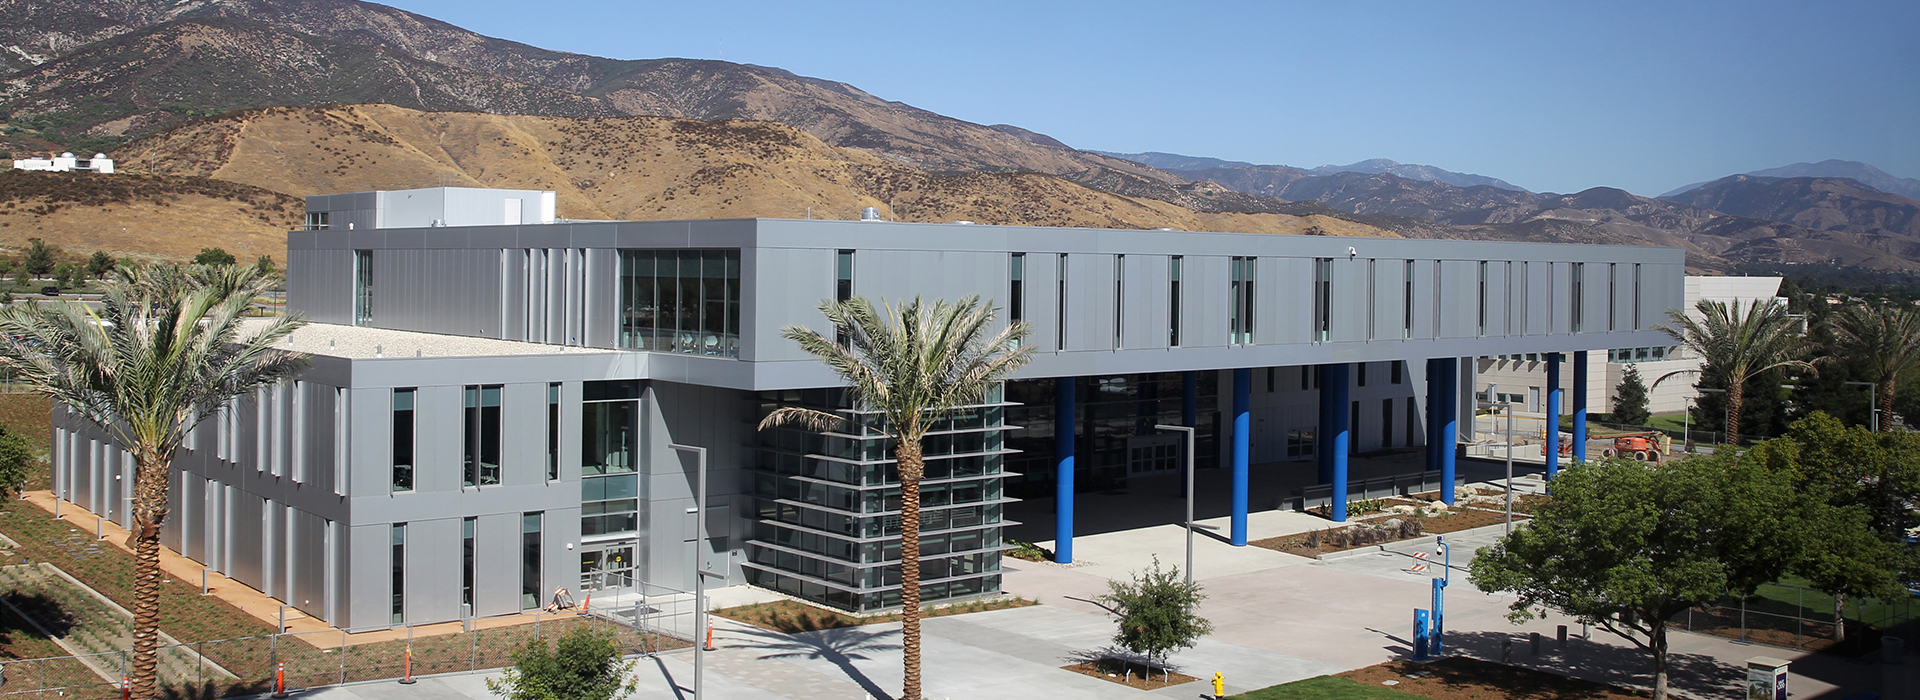 CSUSB celebrates formal opening of Center for Global Innovation